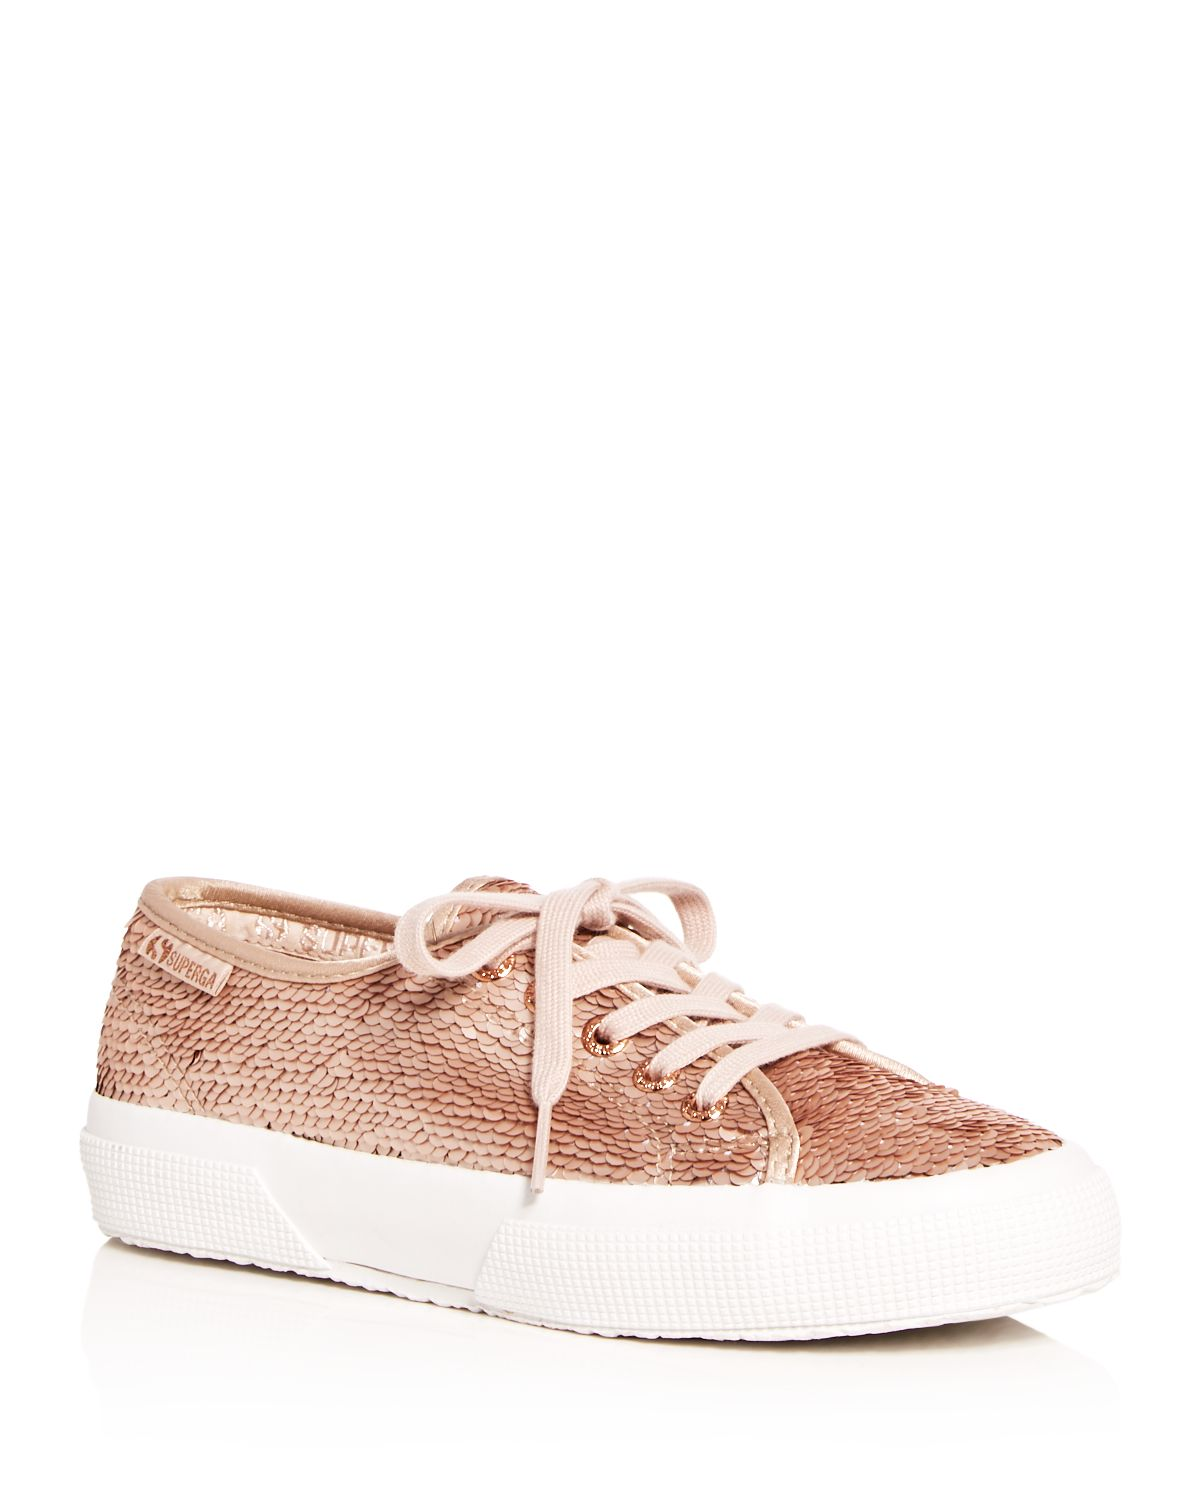 Superga Women's Sequin Lace Up Sneakers